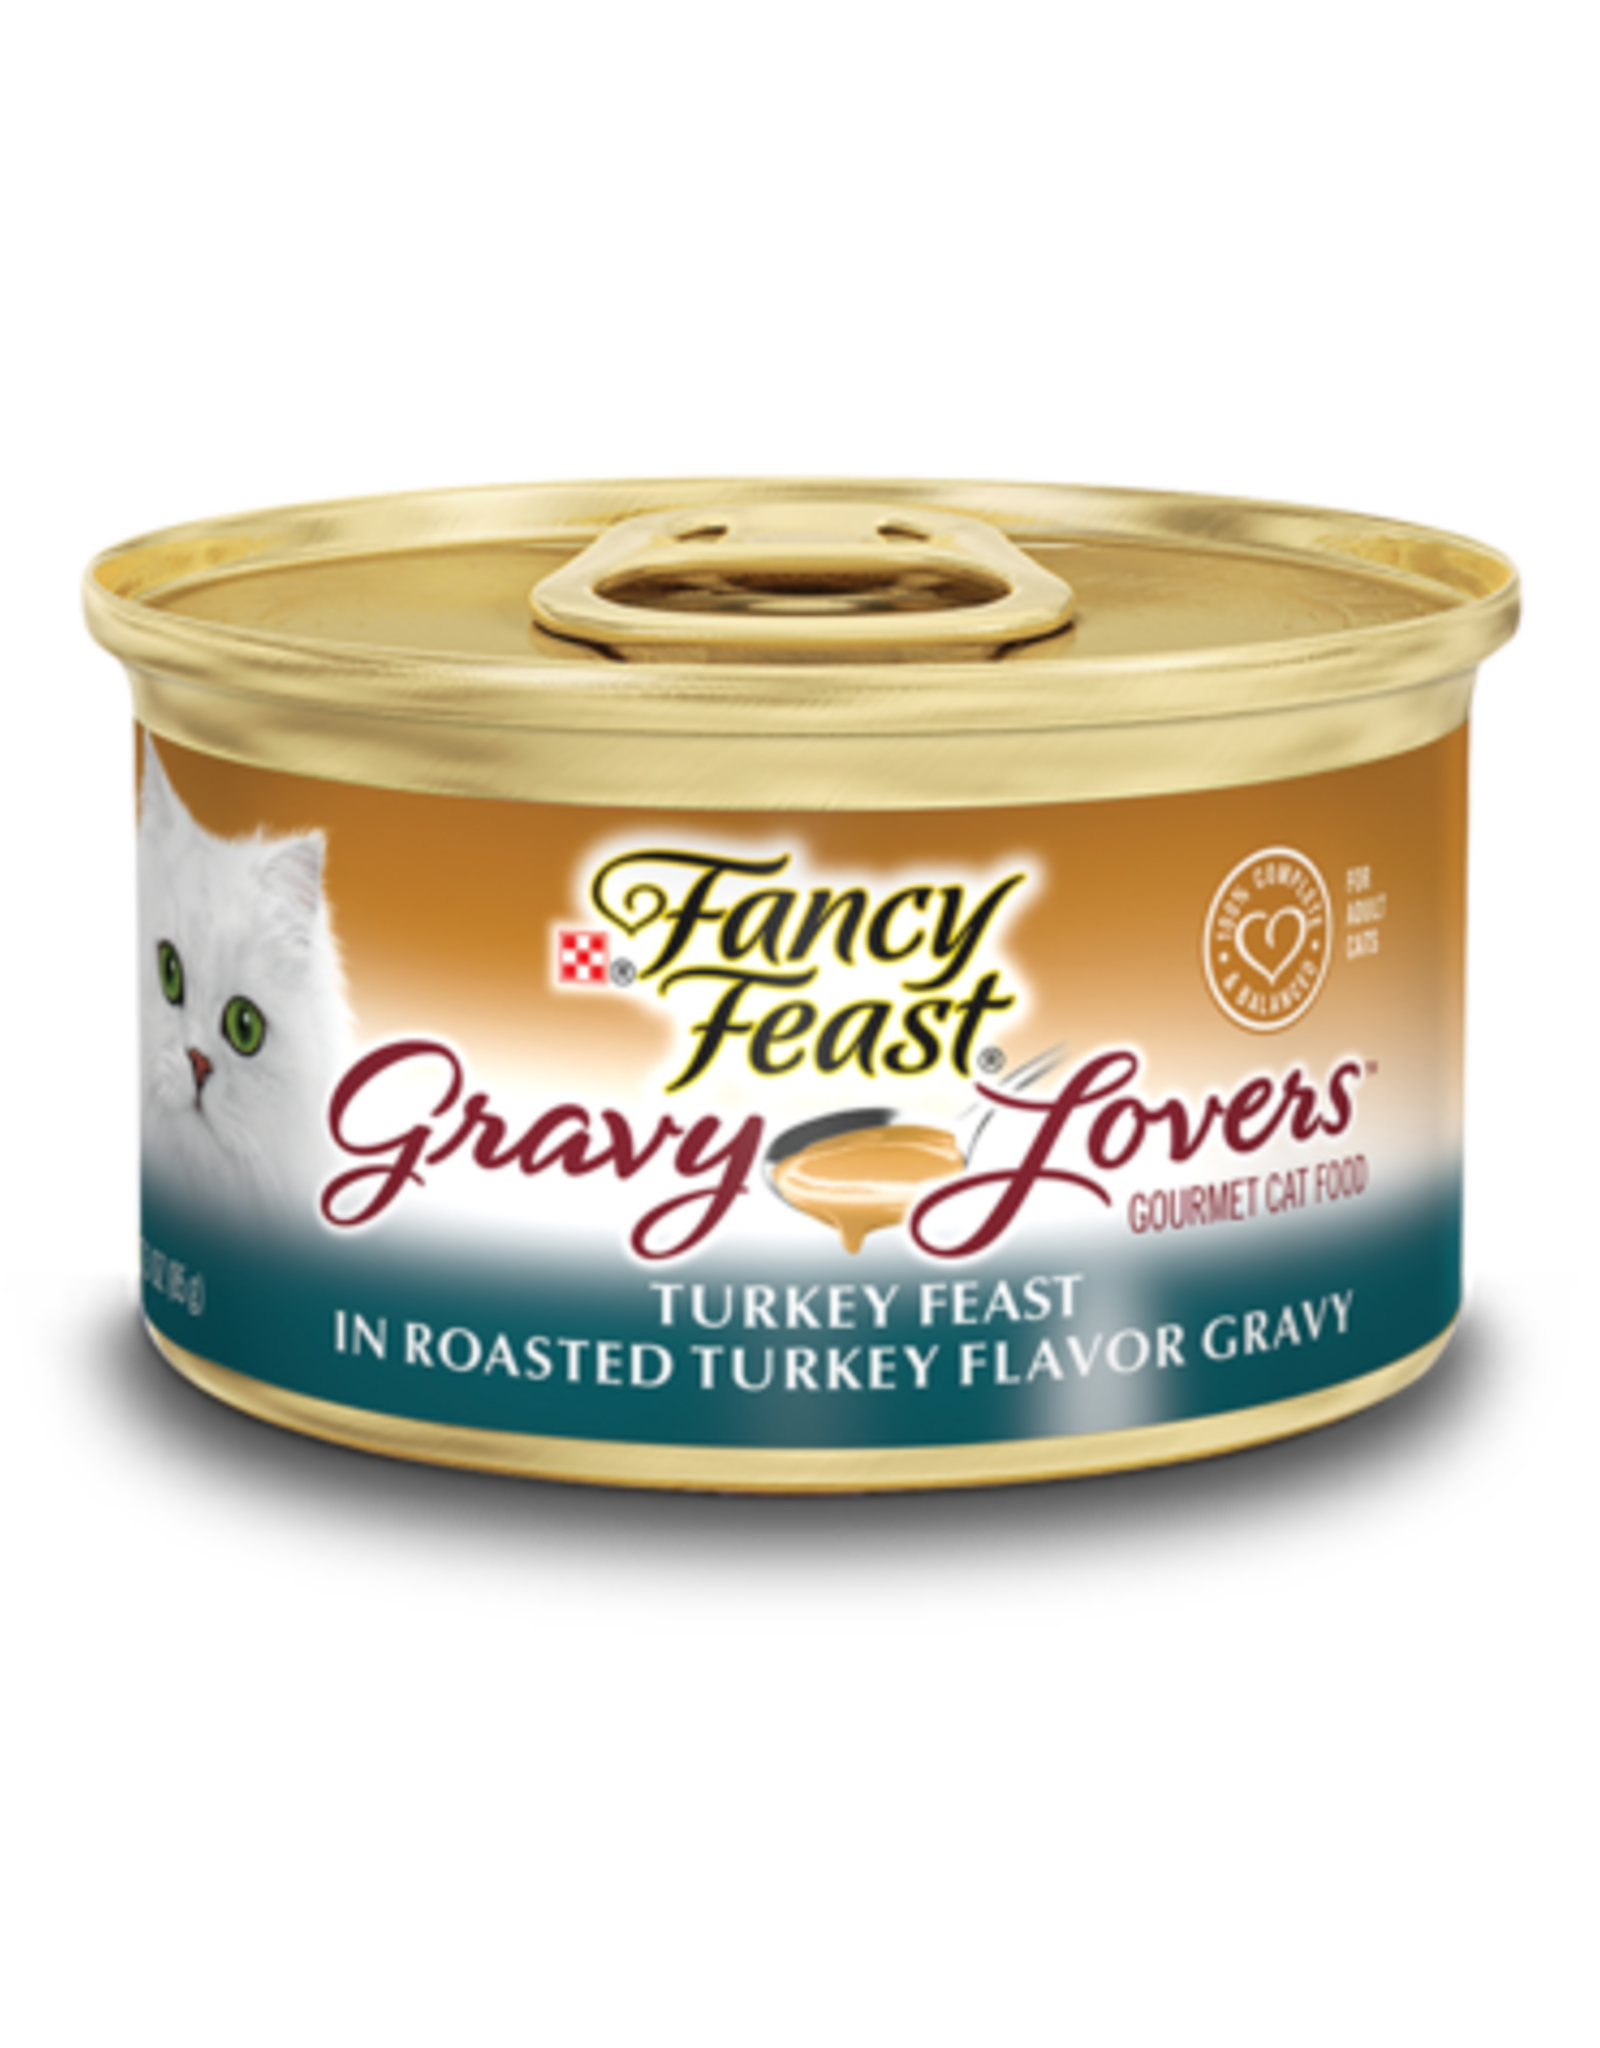 FANCY FEAST GRAVY LOVERS TURKEY 3OZ CAN